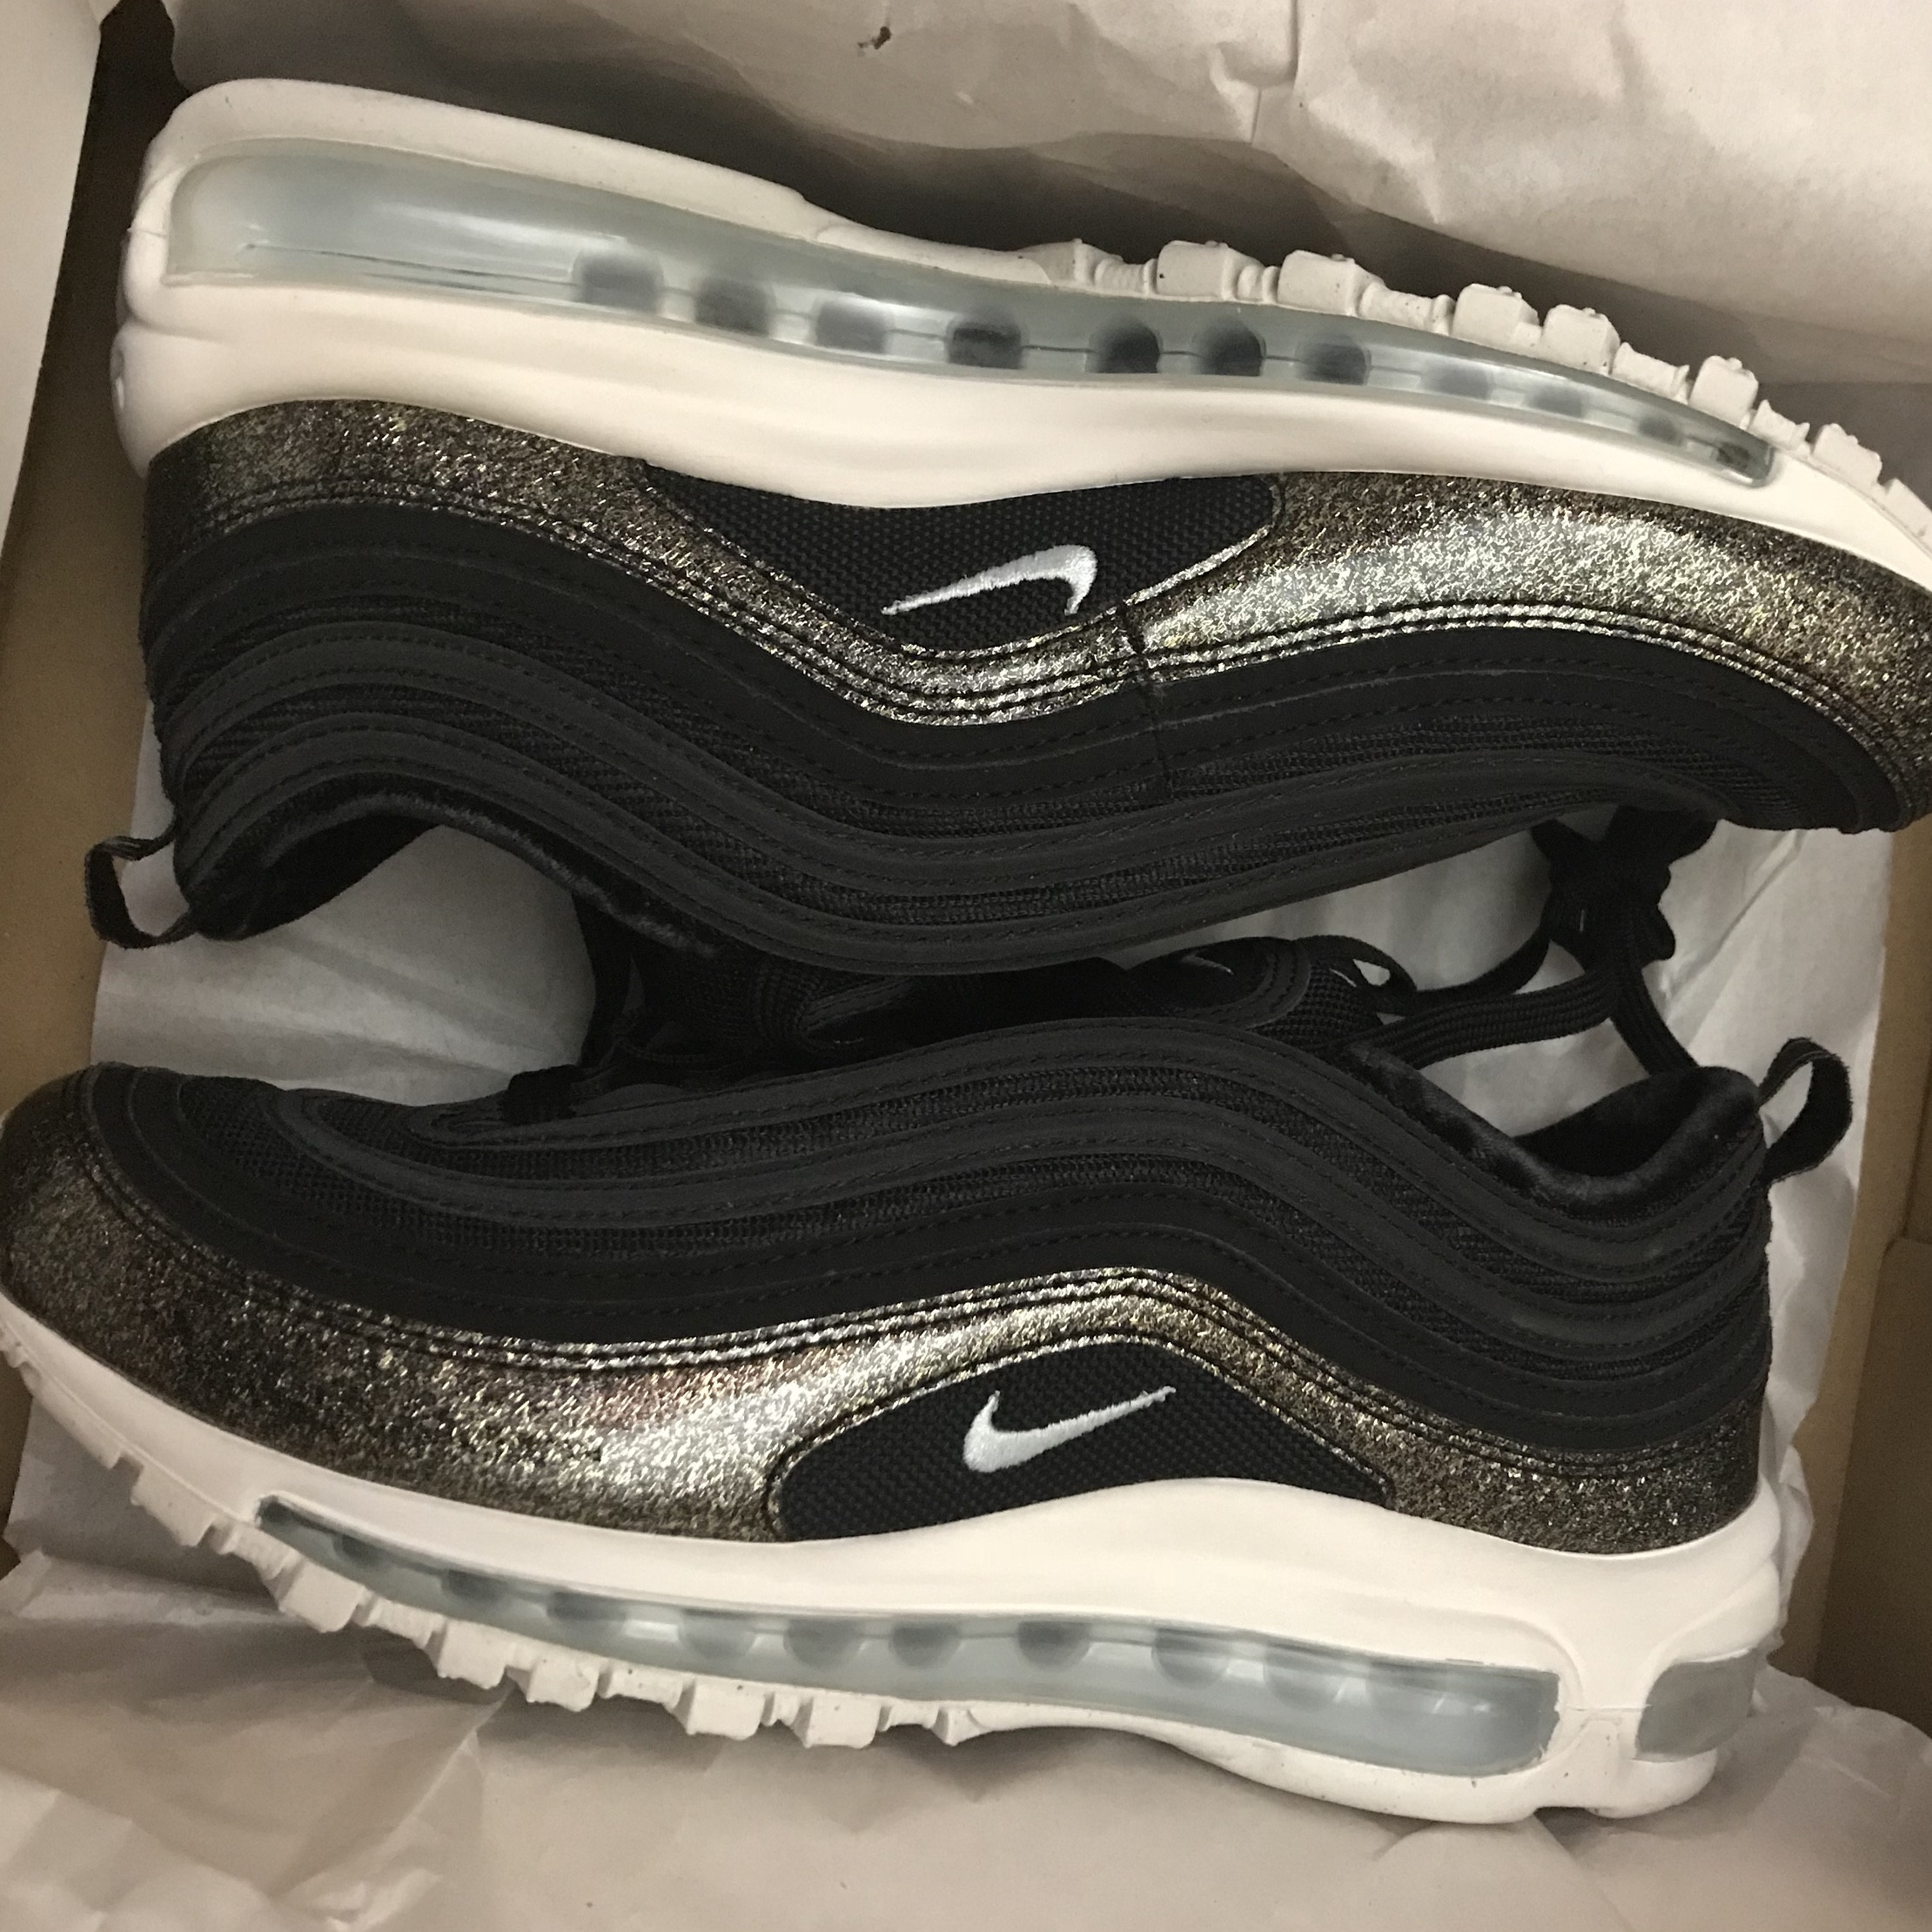 New nike air max 97 pinnacle qs. Size 7 youth 88.5 Depop